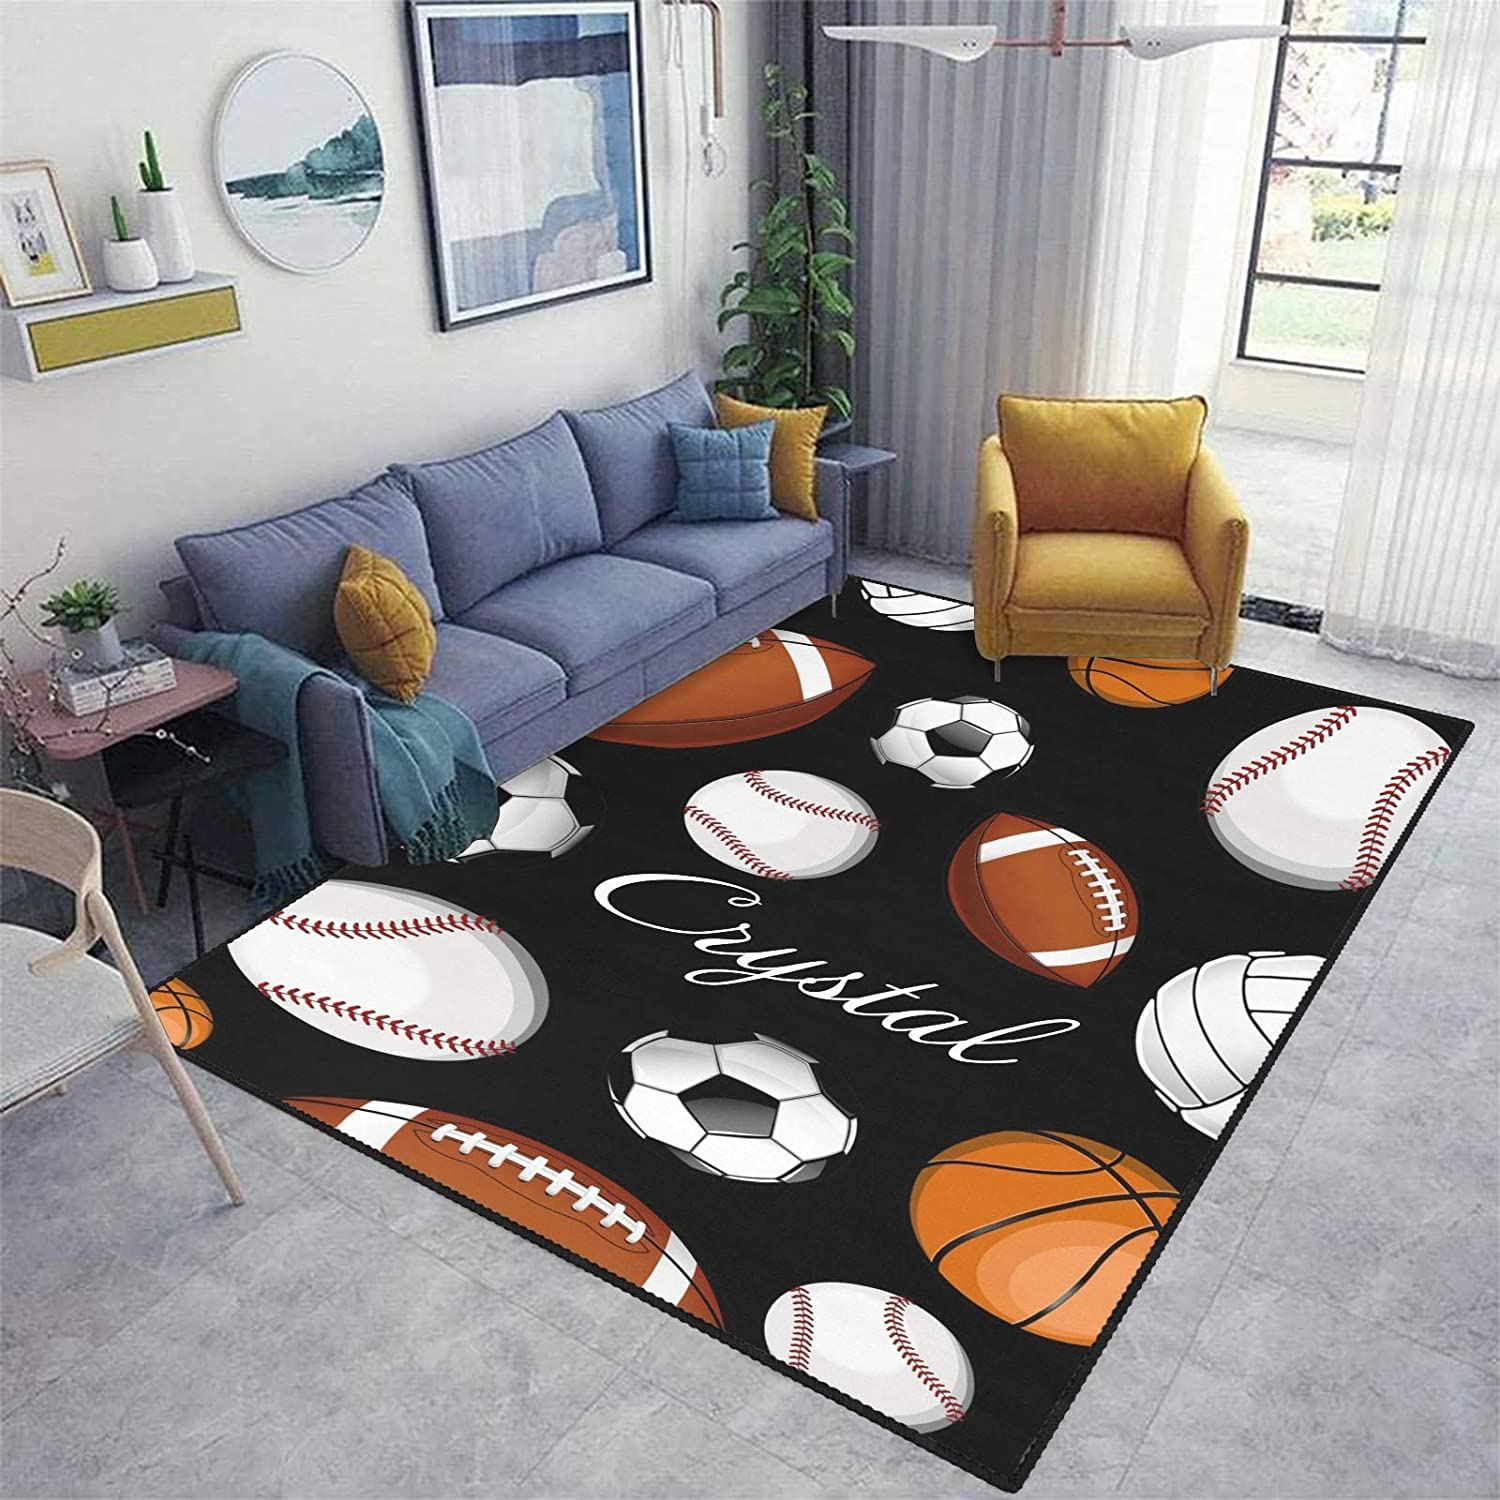 Basketball Rugby Tennis Football Sale Special Price Area New popularity Custom Ca Personalized Rug